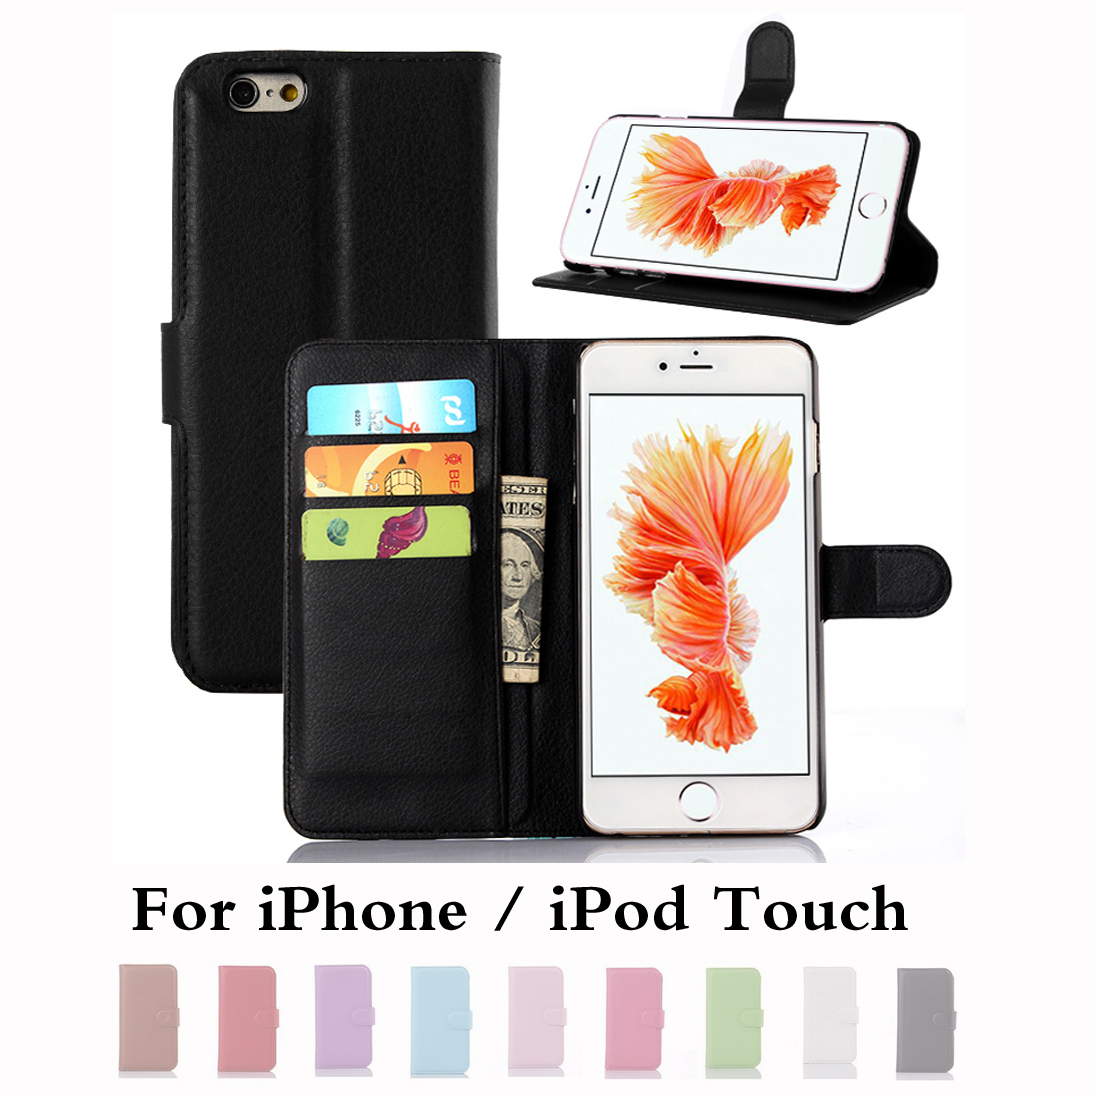 Wallet Apple Iphone XR XS MAX X 8 7 6S SE 5S 5C 4S Ipod Touch Plus PU Leather Shell Pink Rose Green Purple Blue Black